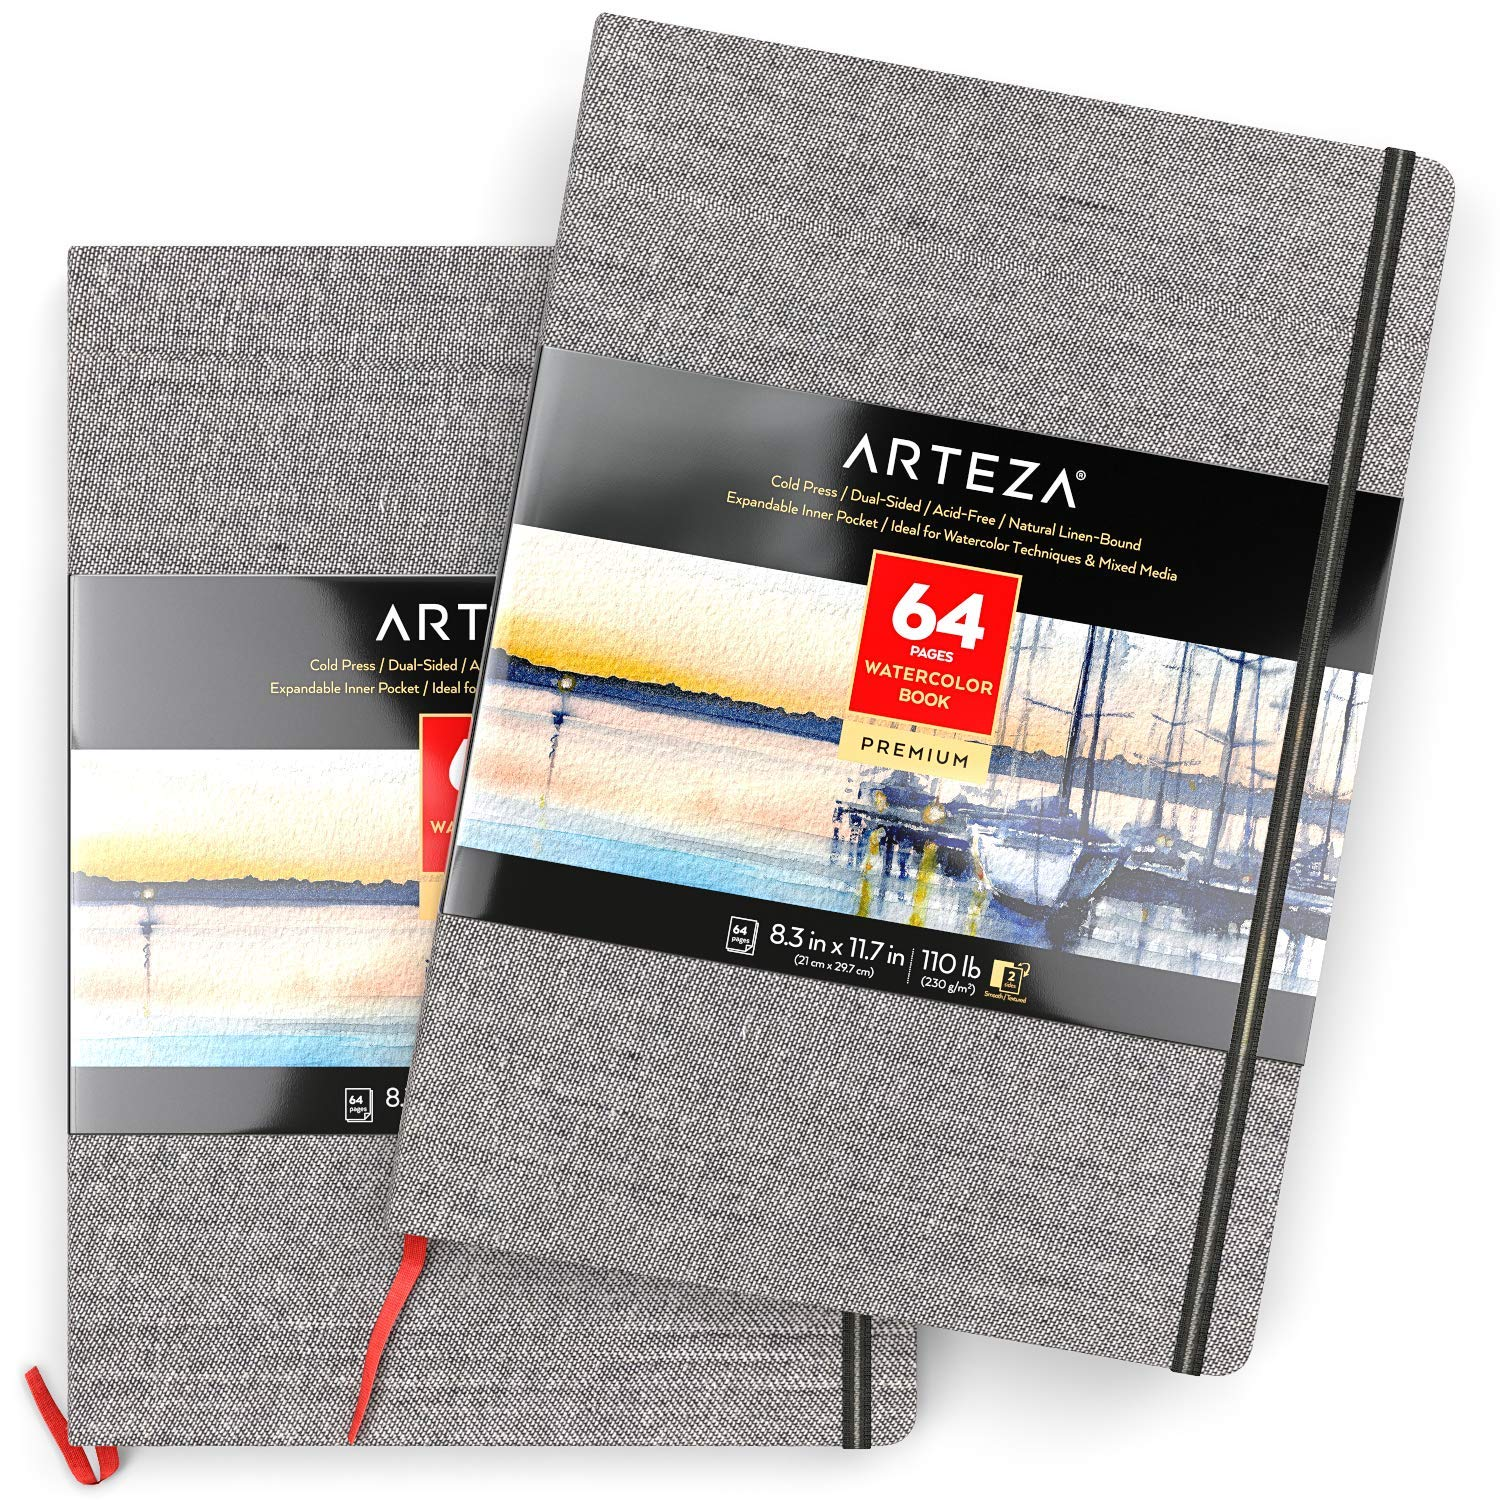 ARTEZA 8.3x11.7'' Watercolor Book, Pack of 2 Watercolor Sketchbooks, 64 Pages per Pad, 110lb/230gsm, Linen Bound with Bookmark Ribbon and Elastic Strap, for Watercolor Techniques and Mixed Media by ARTEZA